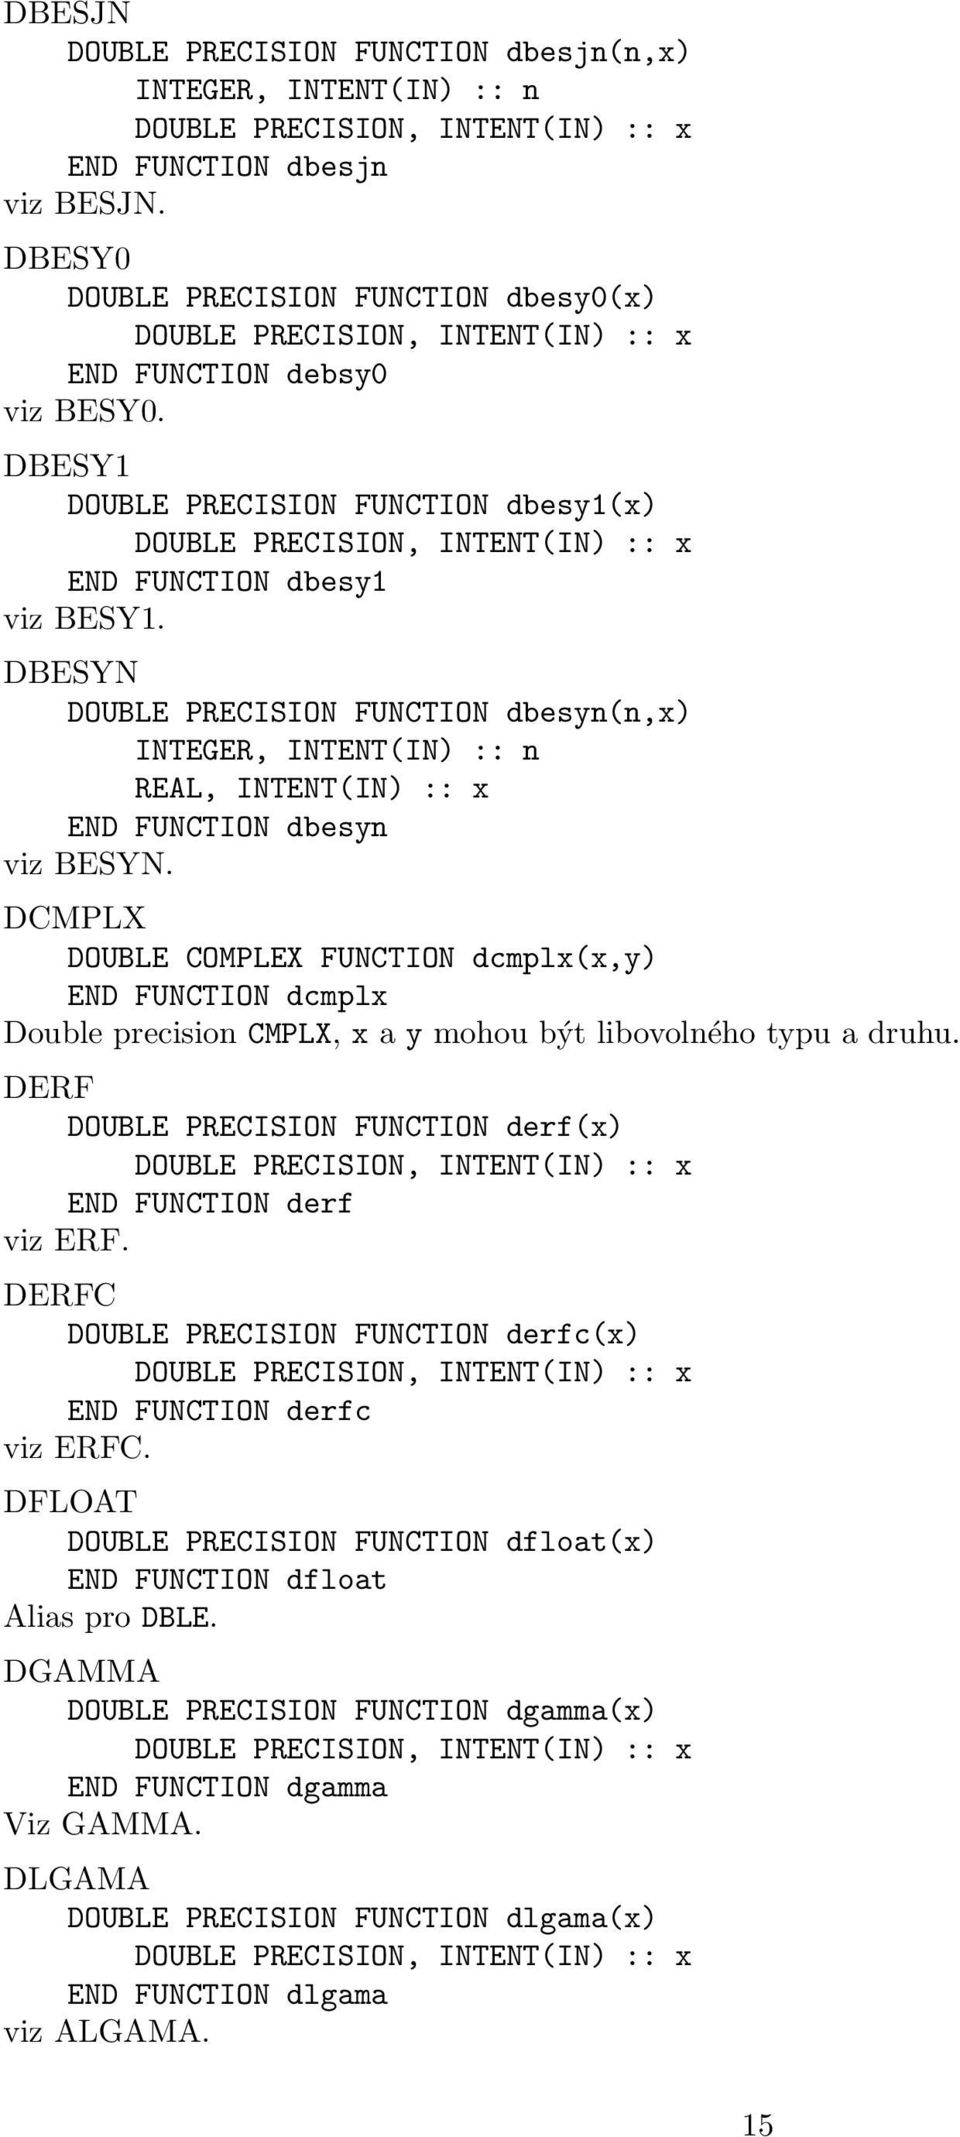 DBESY1 DOUBLE PRECISION FUNCTION dbesy1(x) DOUBLE PRECISION, INTENT(IN) :: x END FUNCTION dbesy1 viz BESY1.